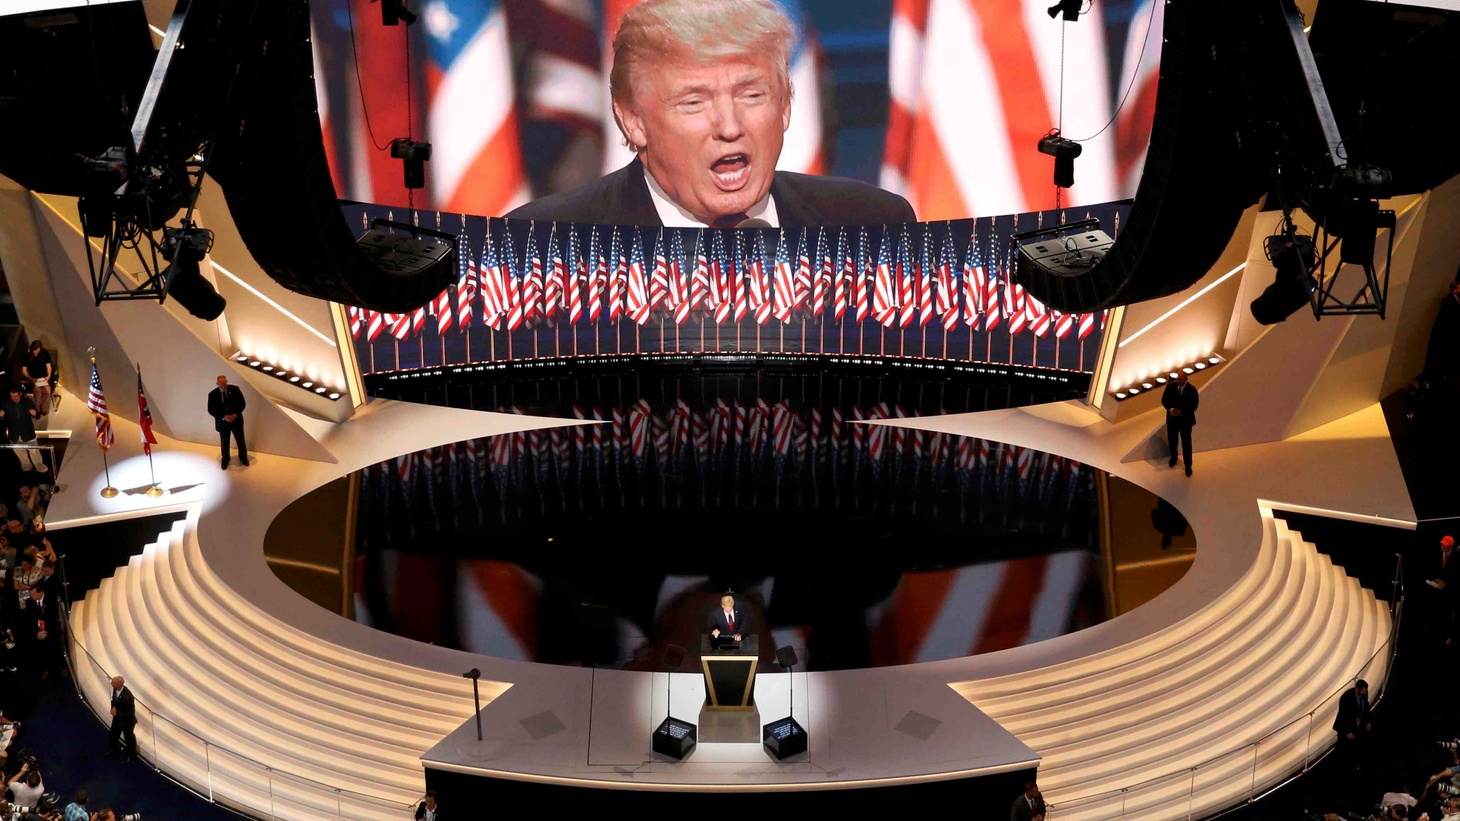 Was Donald Trump's dystopian portrayal of America an effective way of pulling more voters into his camp? And on the subject of fear, a discussion with an LAPD captain about the rise in crime in Los Angeles and what's behind it.